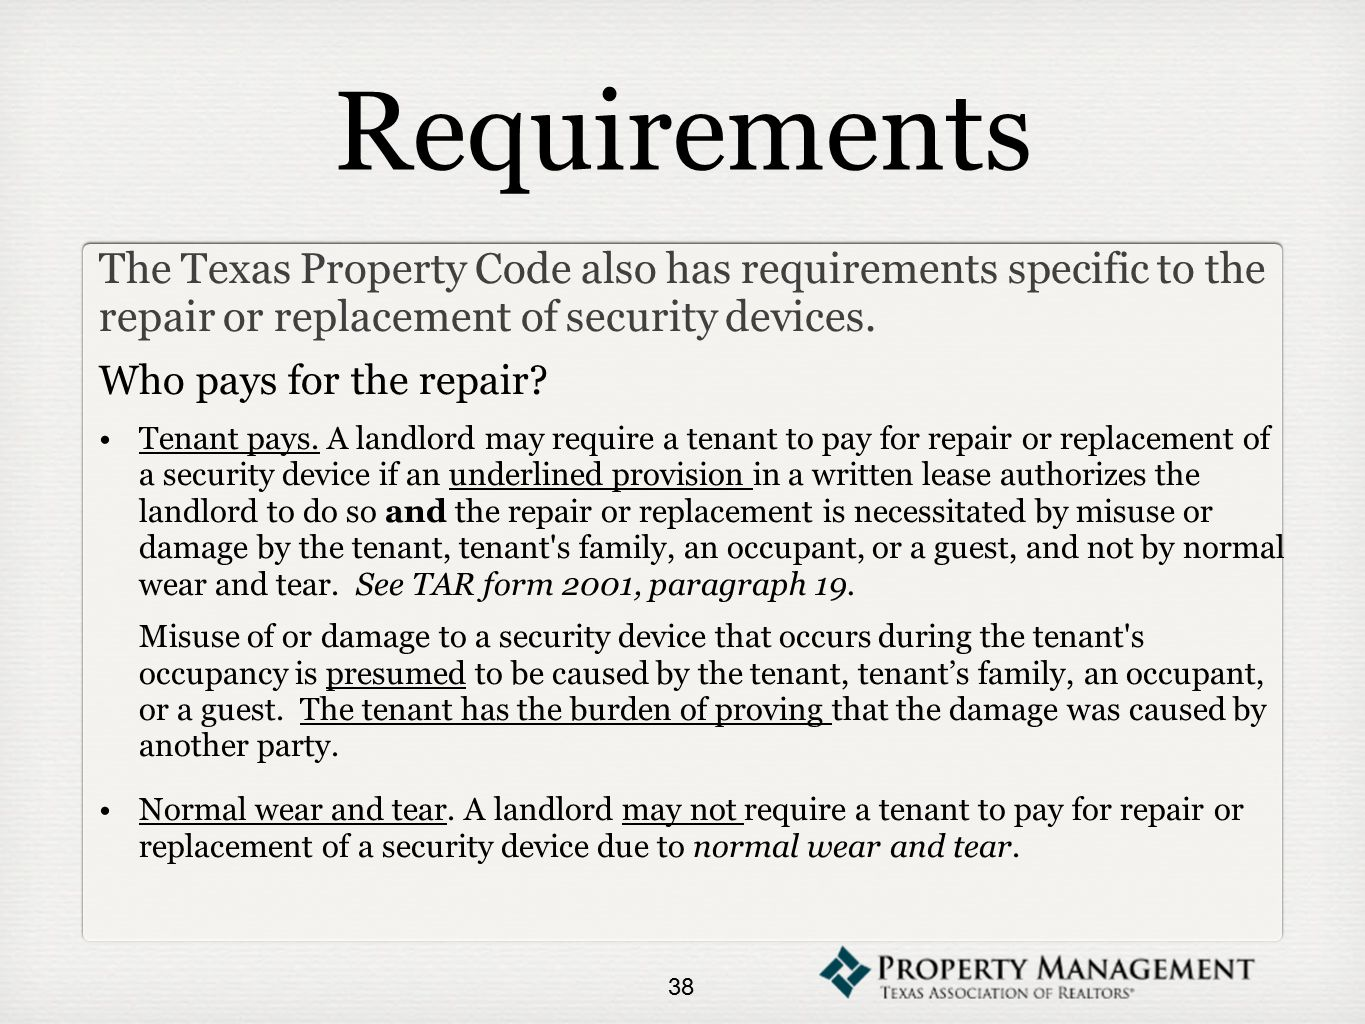 Requirements The Texas Property Code also has requirements specific to the repair or replacement of security devices.